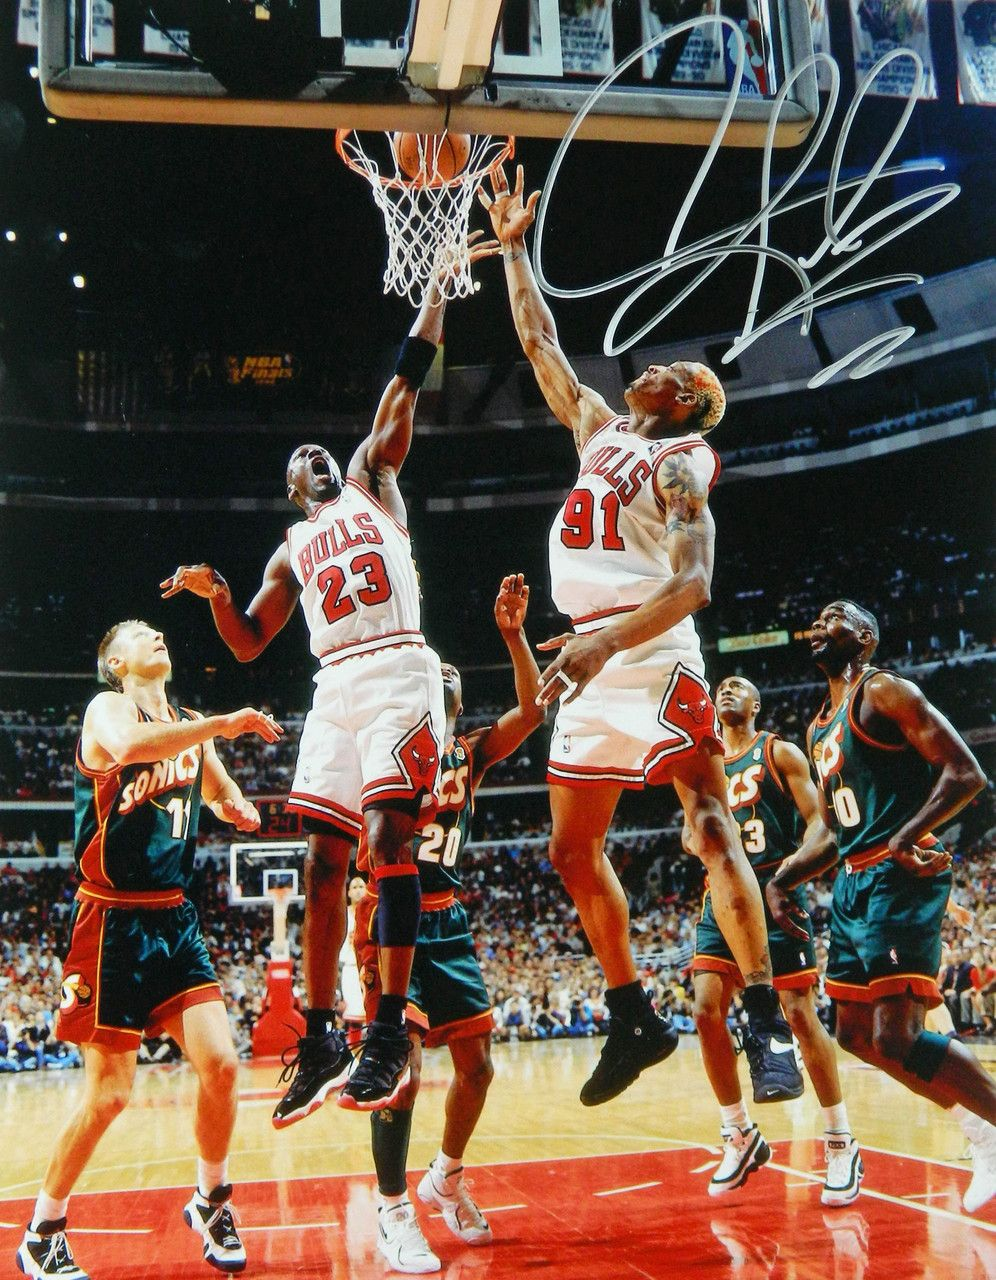 Dennis Rodman Signed Chicago Bulls Action With Michael Jordan 11x14 Photo